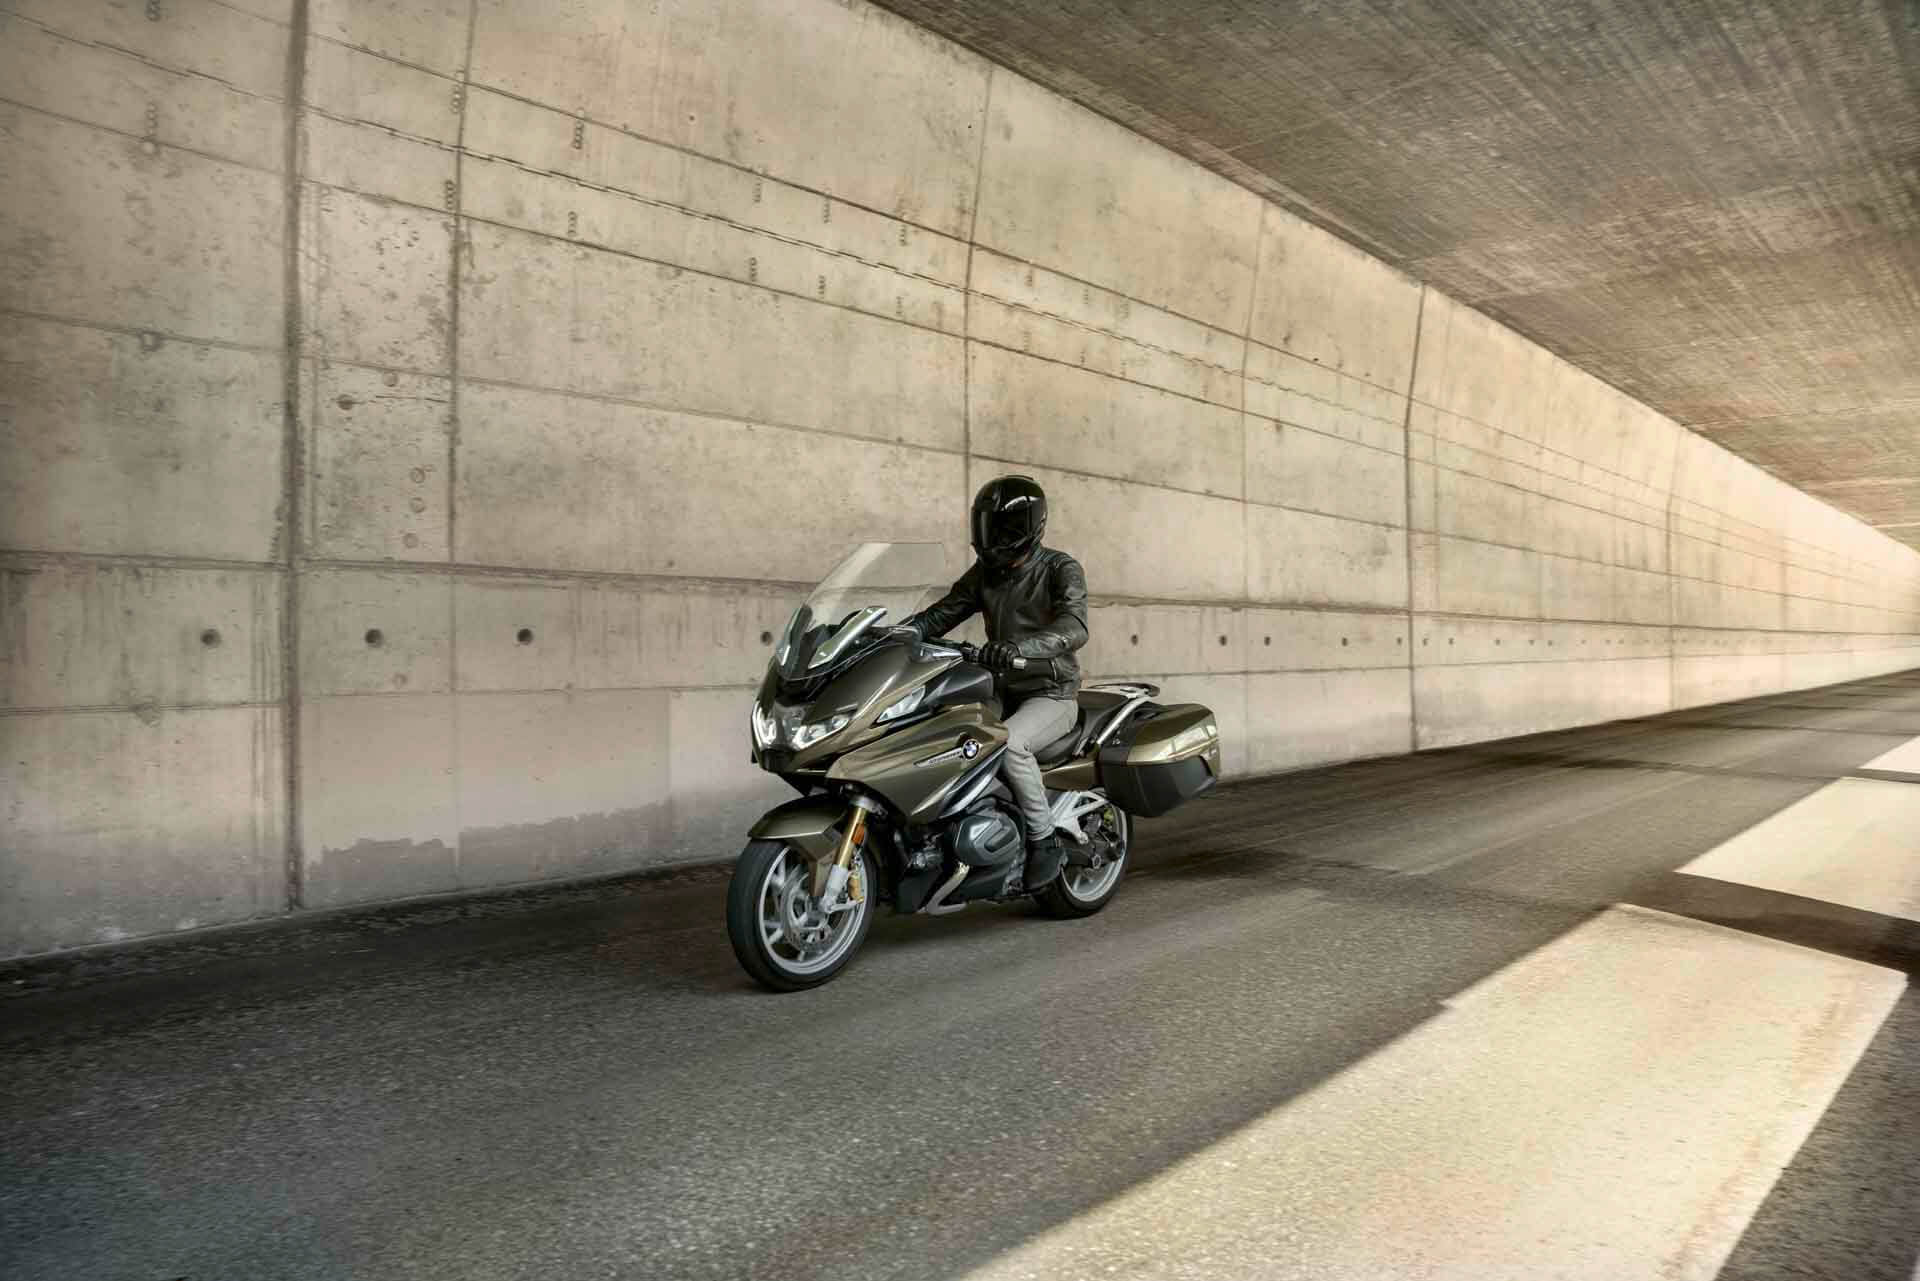 Being on the road, eating up the miles, meeting people, new experiences, exchanging stories: Every tour has highlights. Just like the R 1250 RT. Its many features allow you to ride comfortably, you are always well prepared and can focus entirely on your trip.